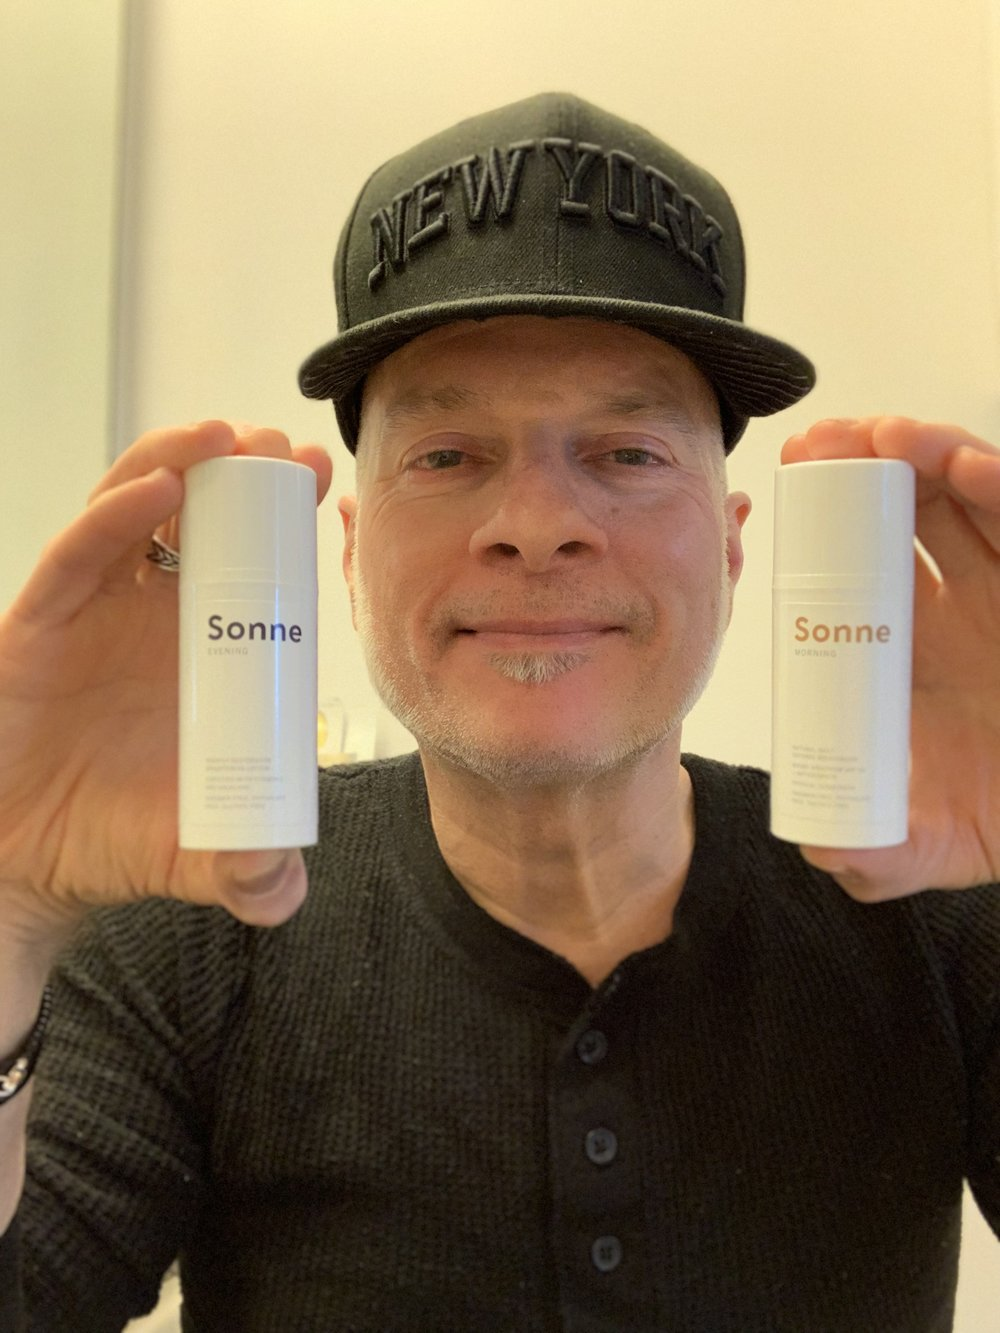 Meet Sonne, the brand making it simple for guys to take good care of their skin.